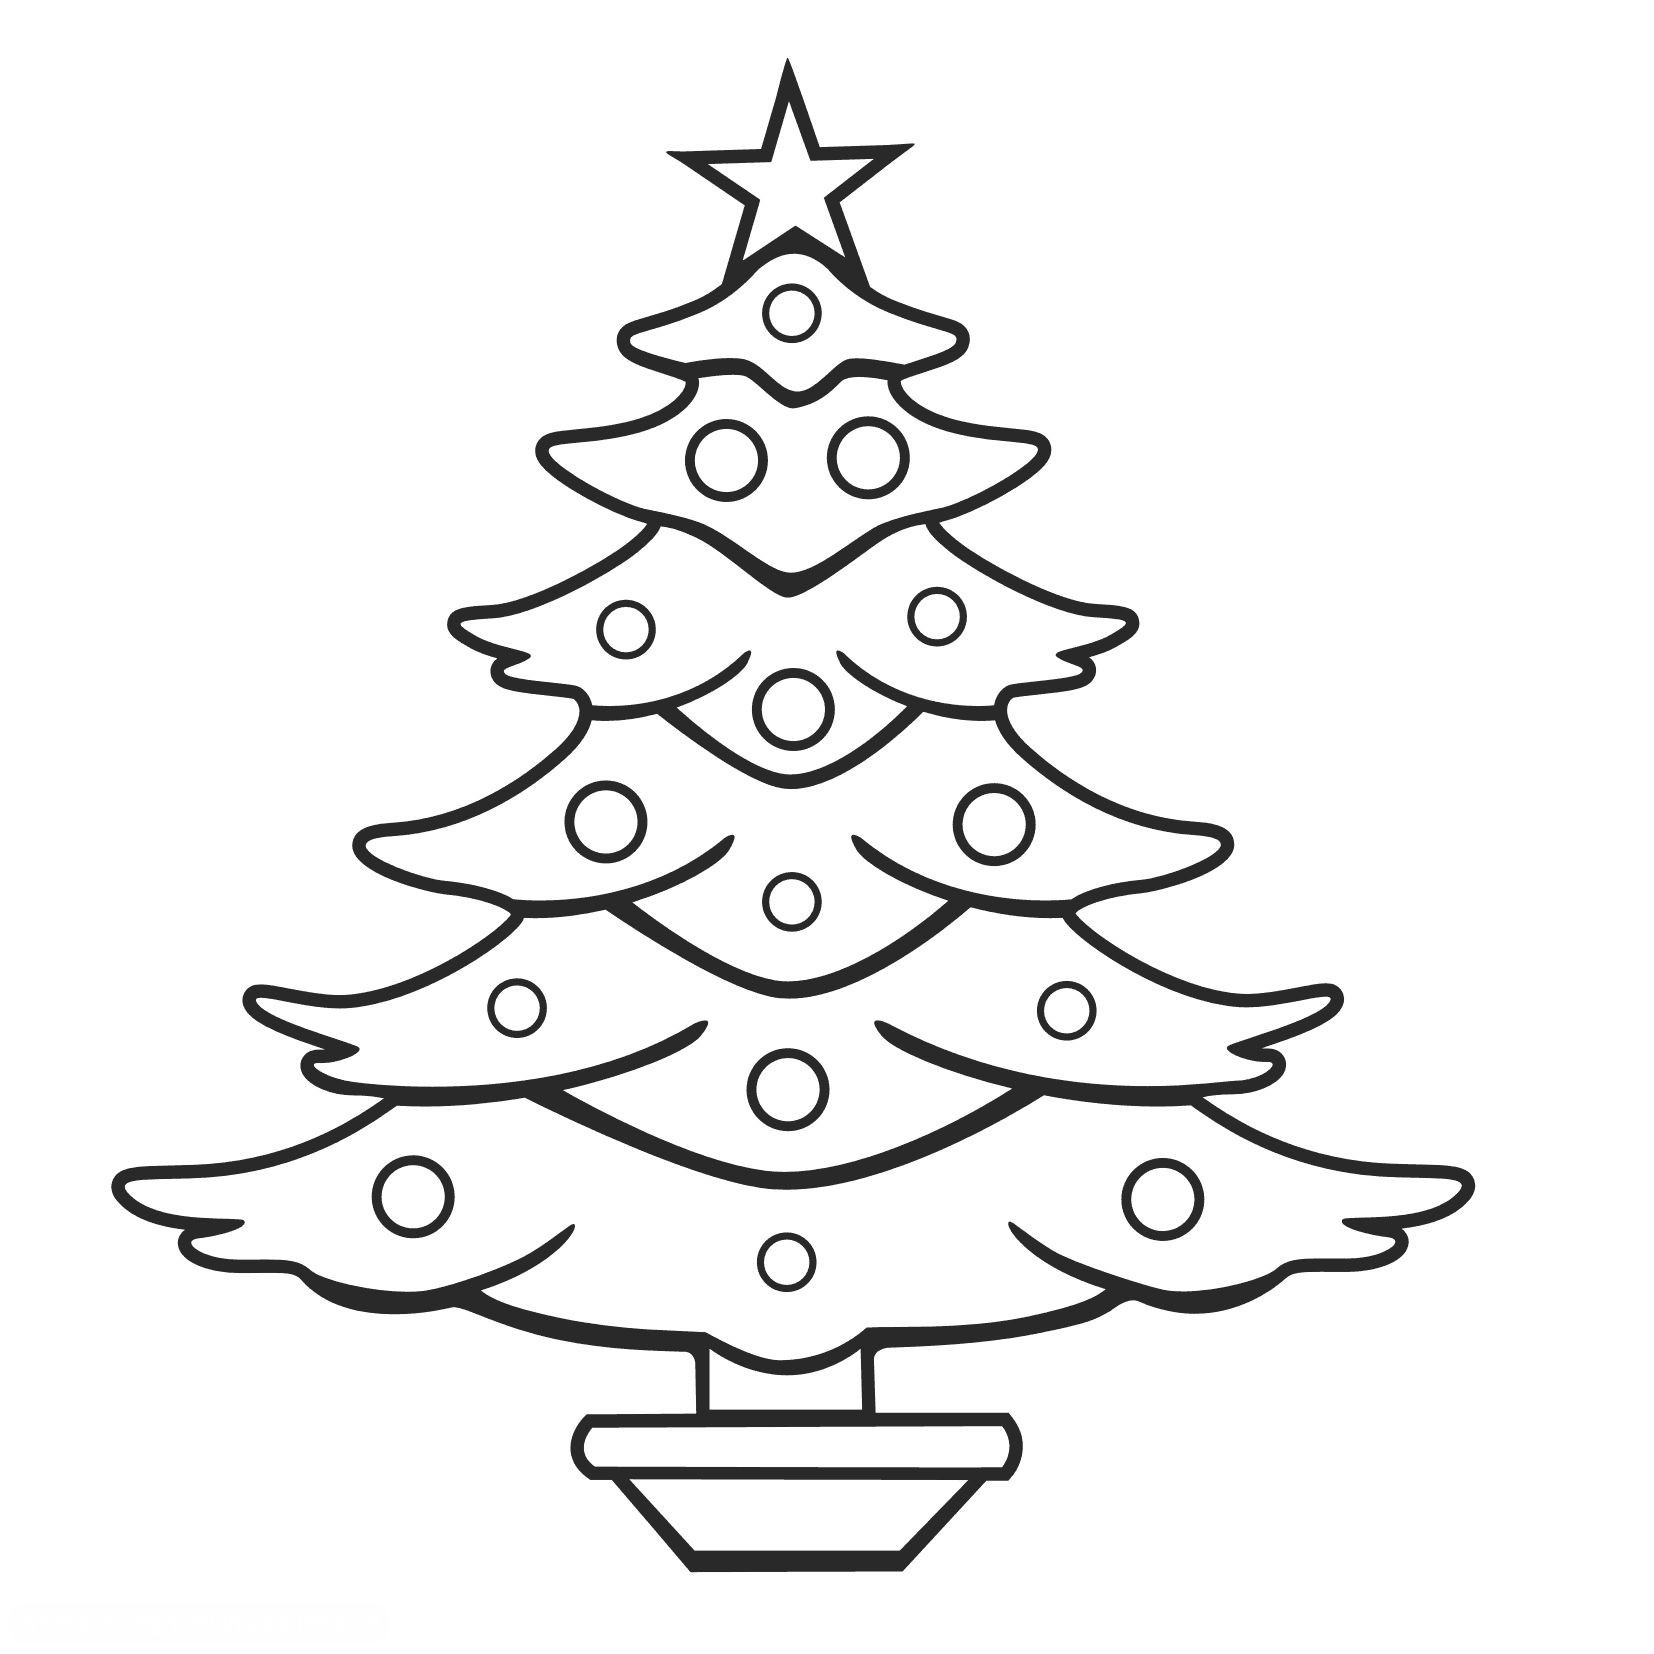 Christmas Tree Coloring Pages With Printable Ornaments Refrence Xmas